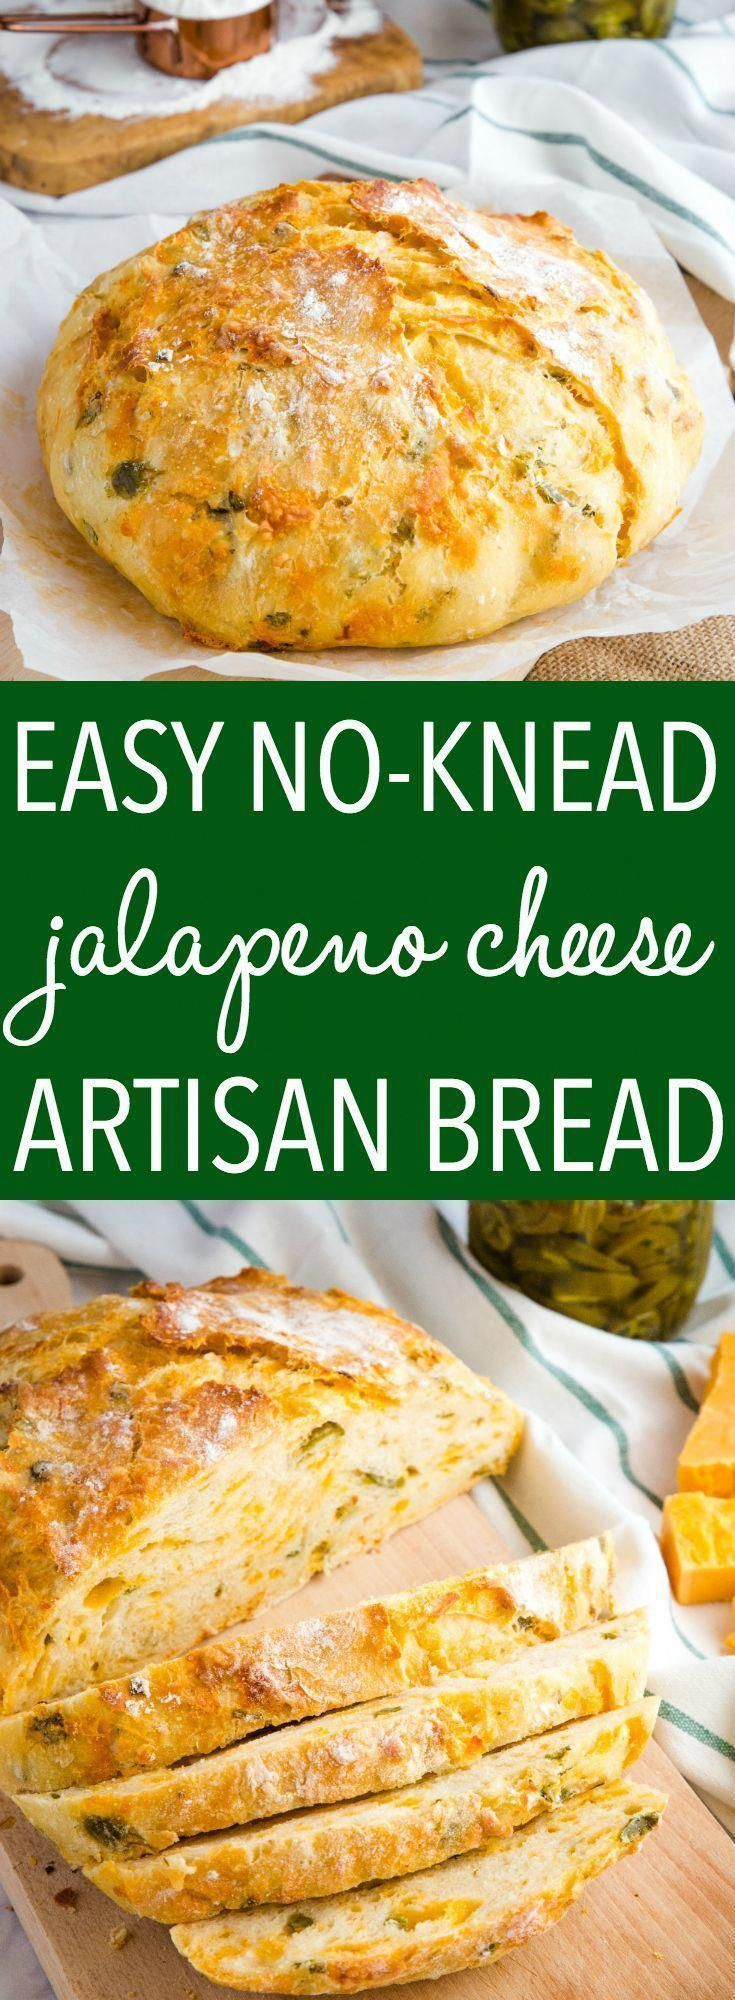 This Easy No Knead Jalapeno Cheese Artisan Bread is the BEST savoury bread for sandwiches! It's packed with spicy pickled jalapeños and real cheddar cheese! Recipe from thebusybaker.ca! #cheese #jalapeno #bread #noknead #artisan #bakery #dutchoven #easyrecipe #recipe #comfortfood via @busybakerblog #LowCarbPancakeRecipe